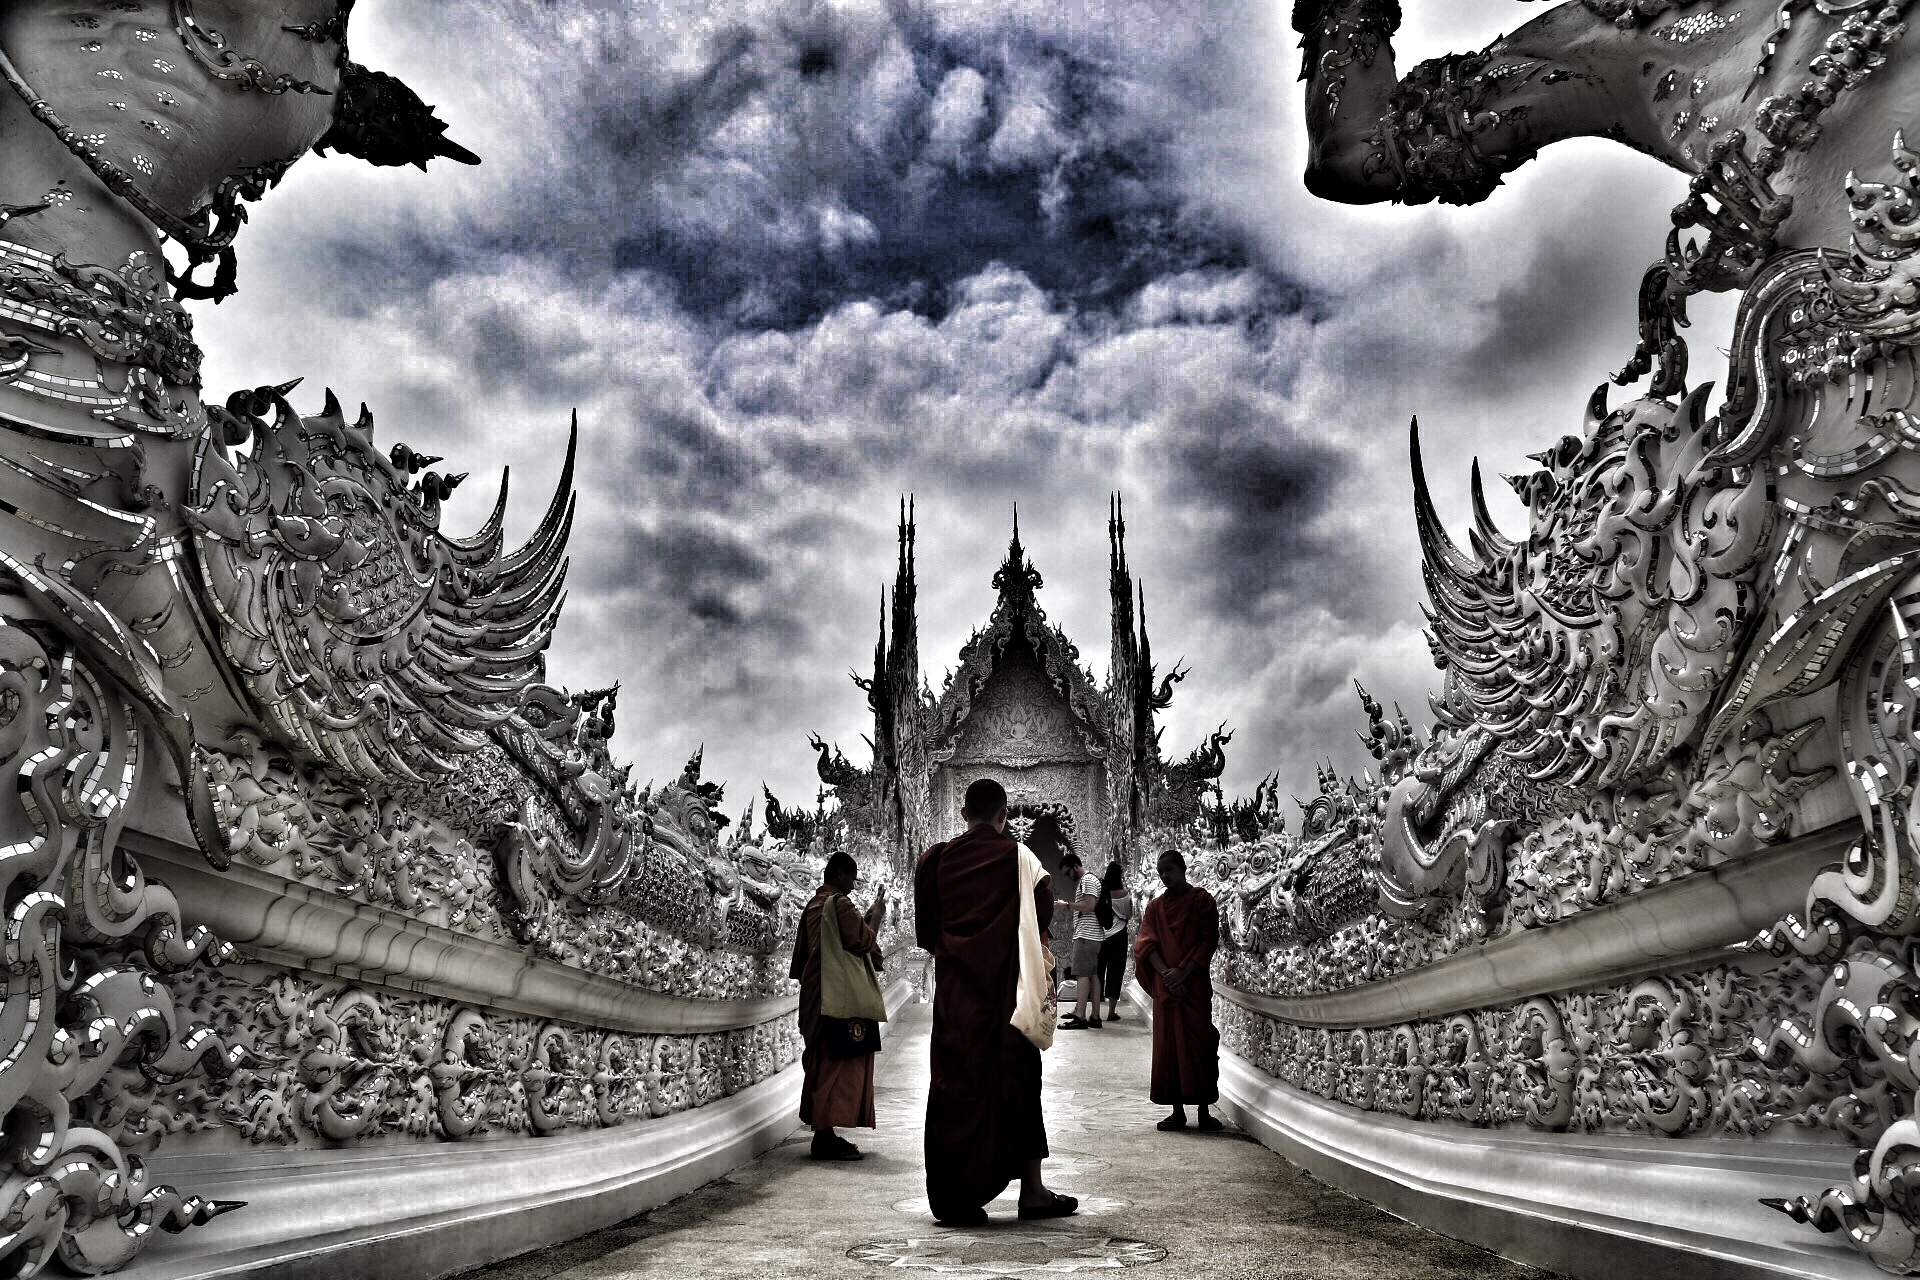 Monks paying their respect at the White Temple in Chiang Rai, Thailand